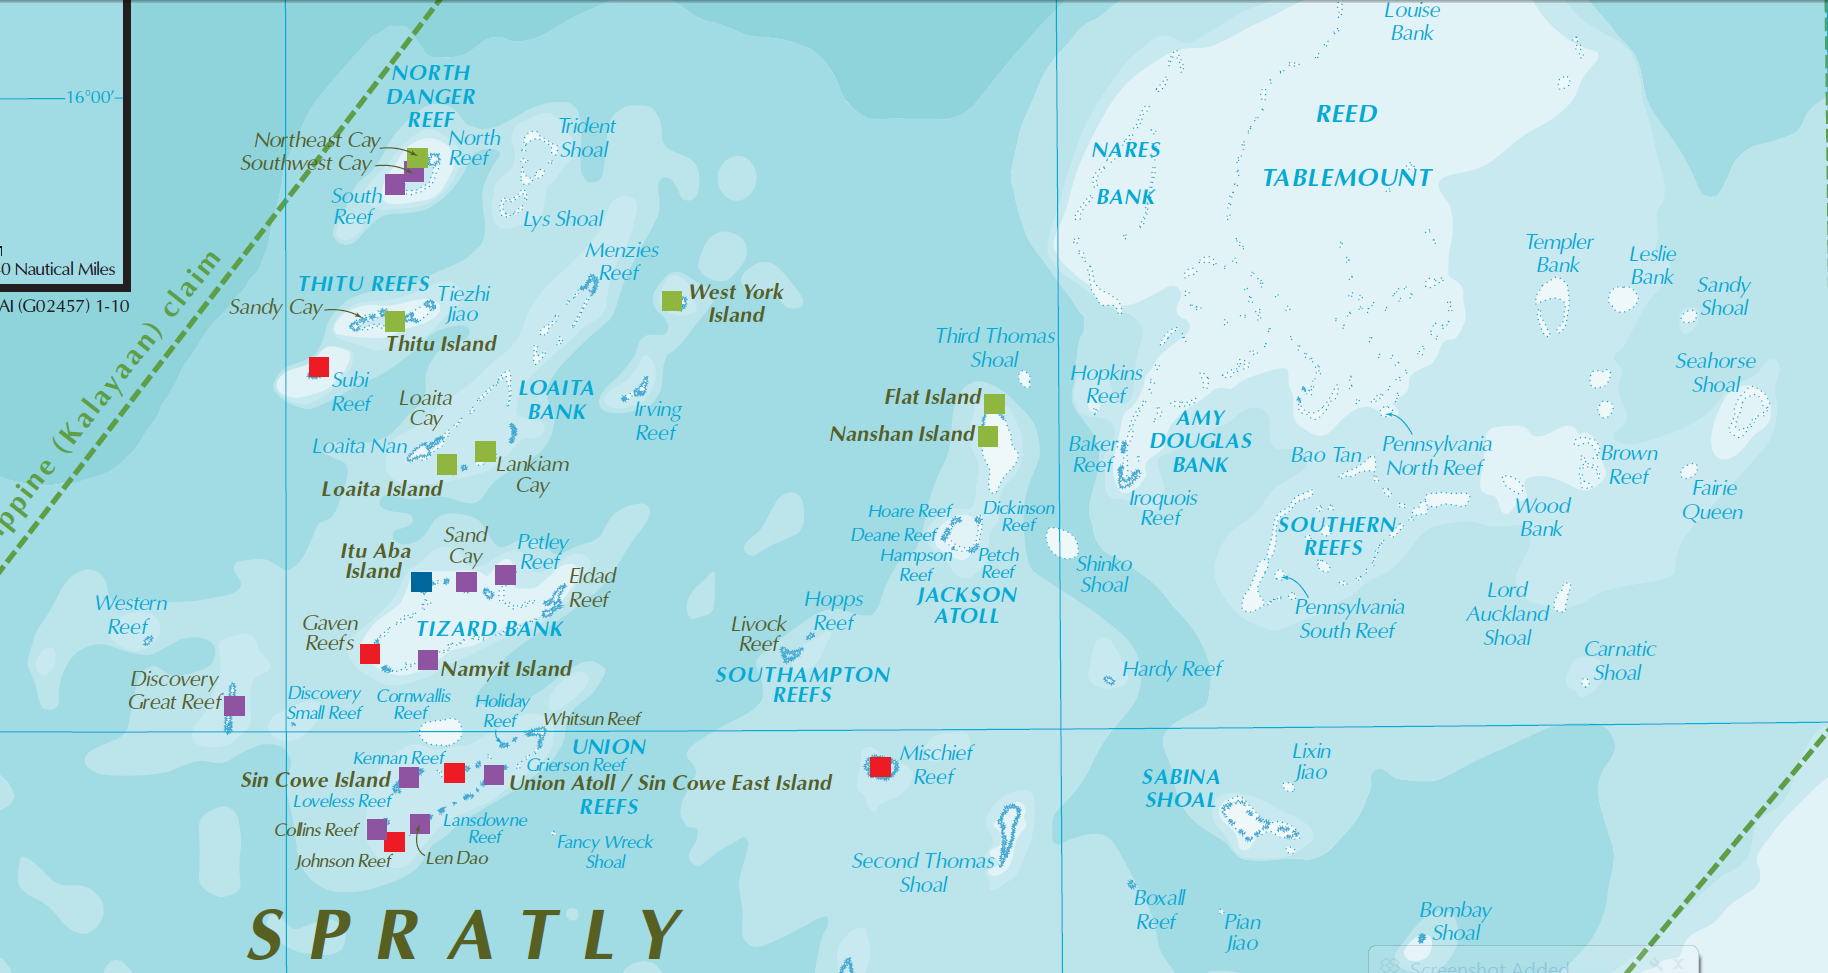 Spratly Islands-US Goverment Map.png